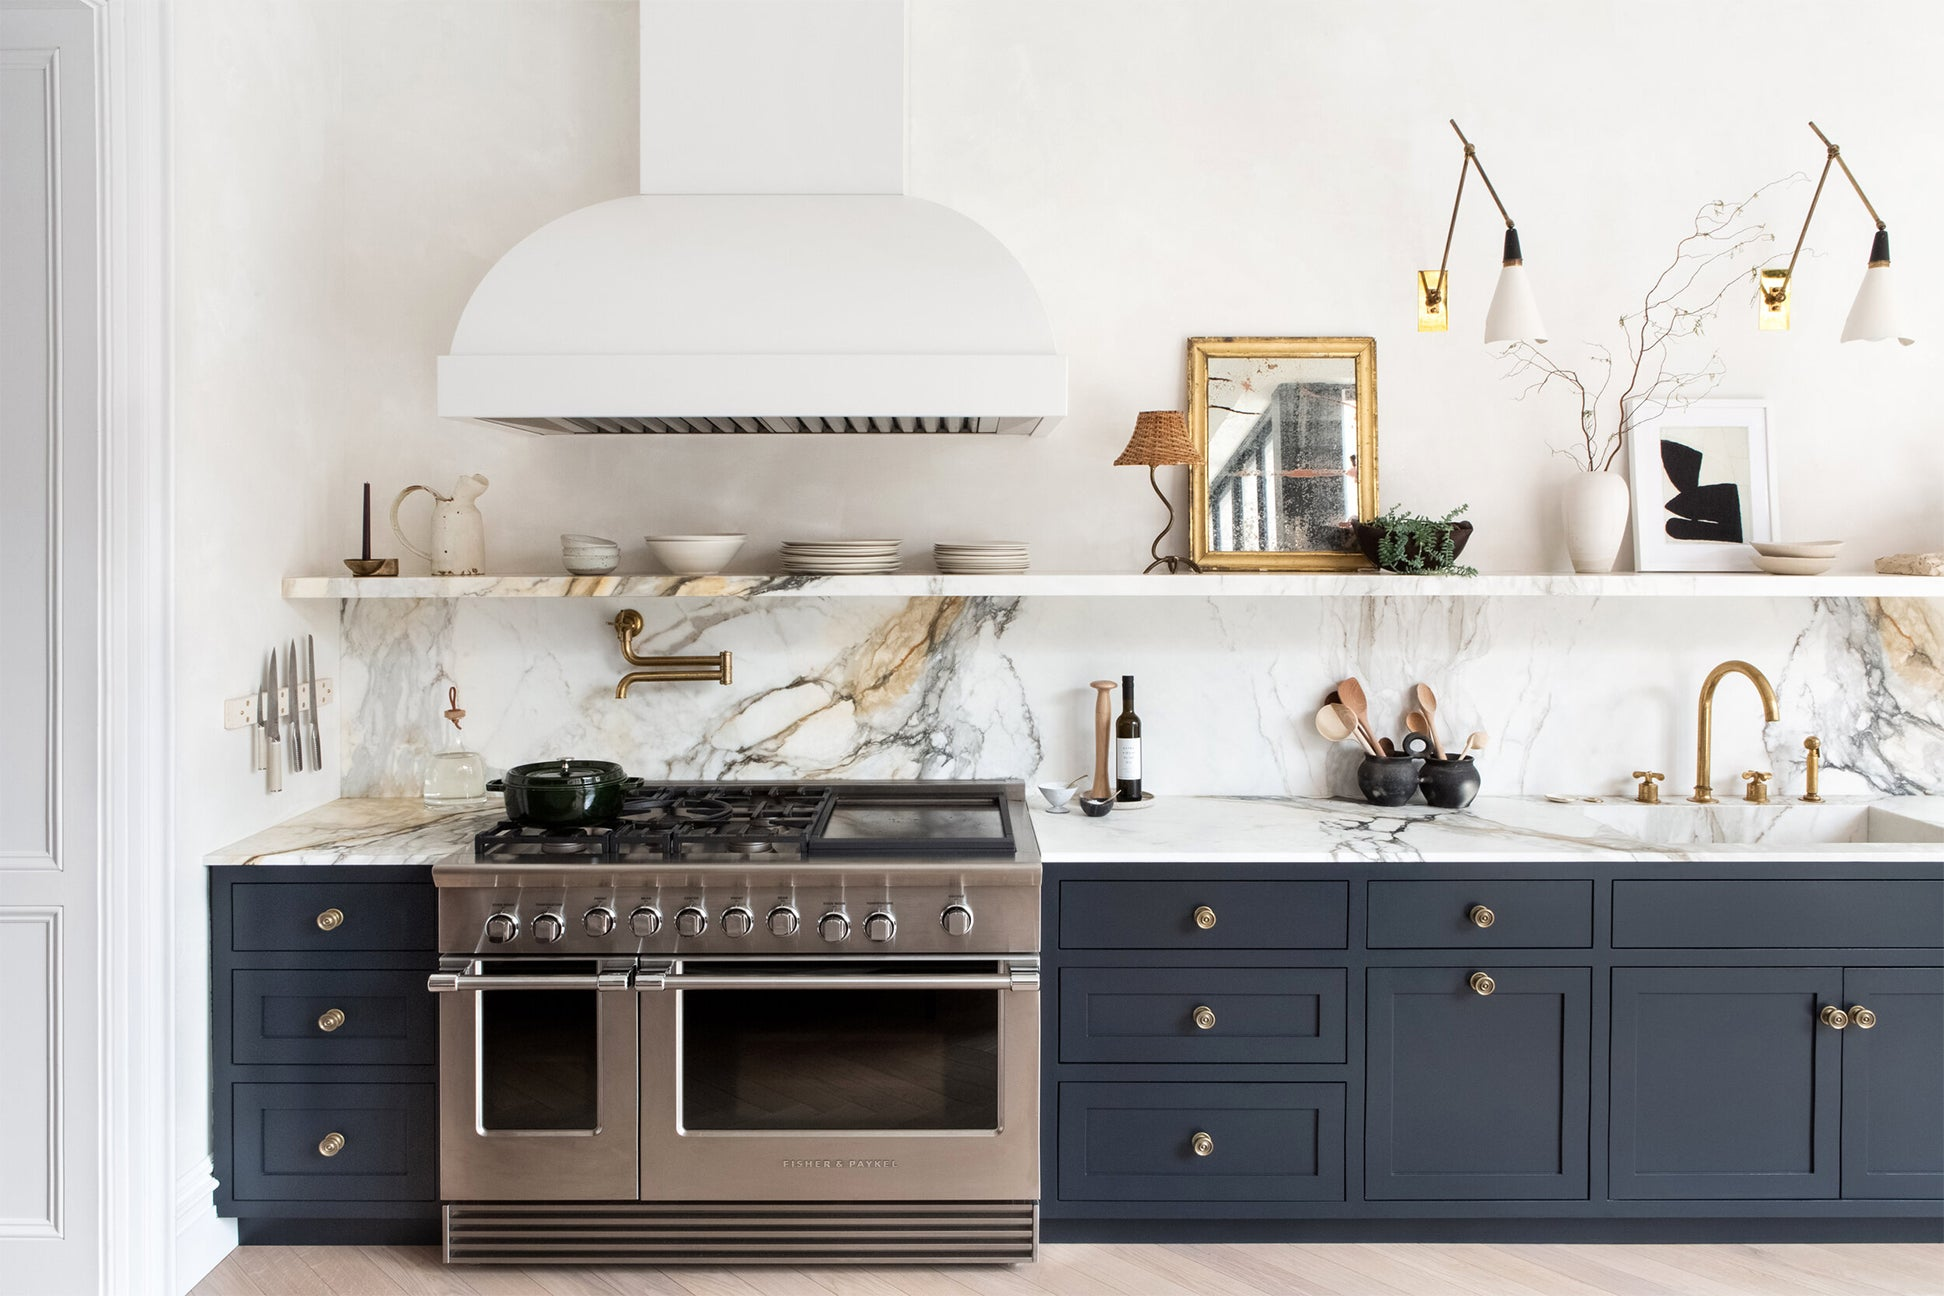 11 Shaker Kitchen Cabinet Ideas That Put A Twist On The Classic Style